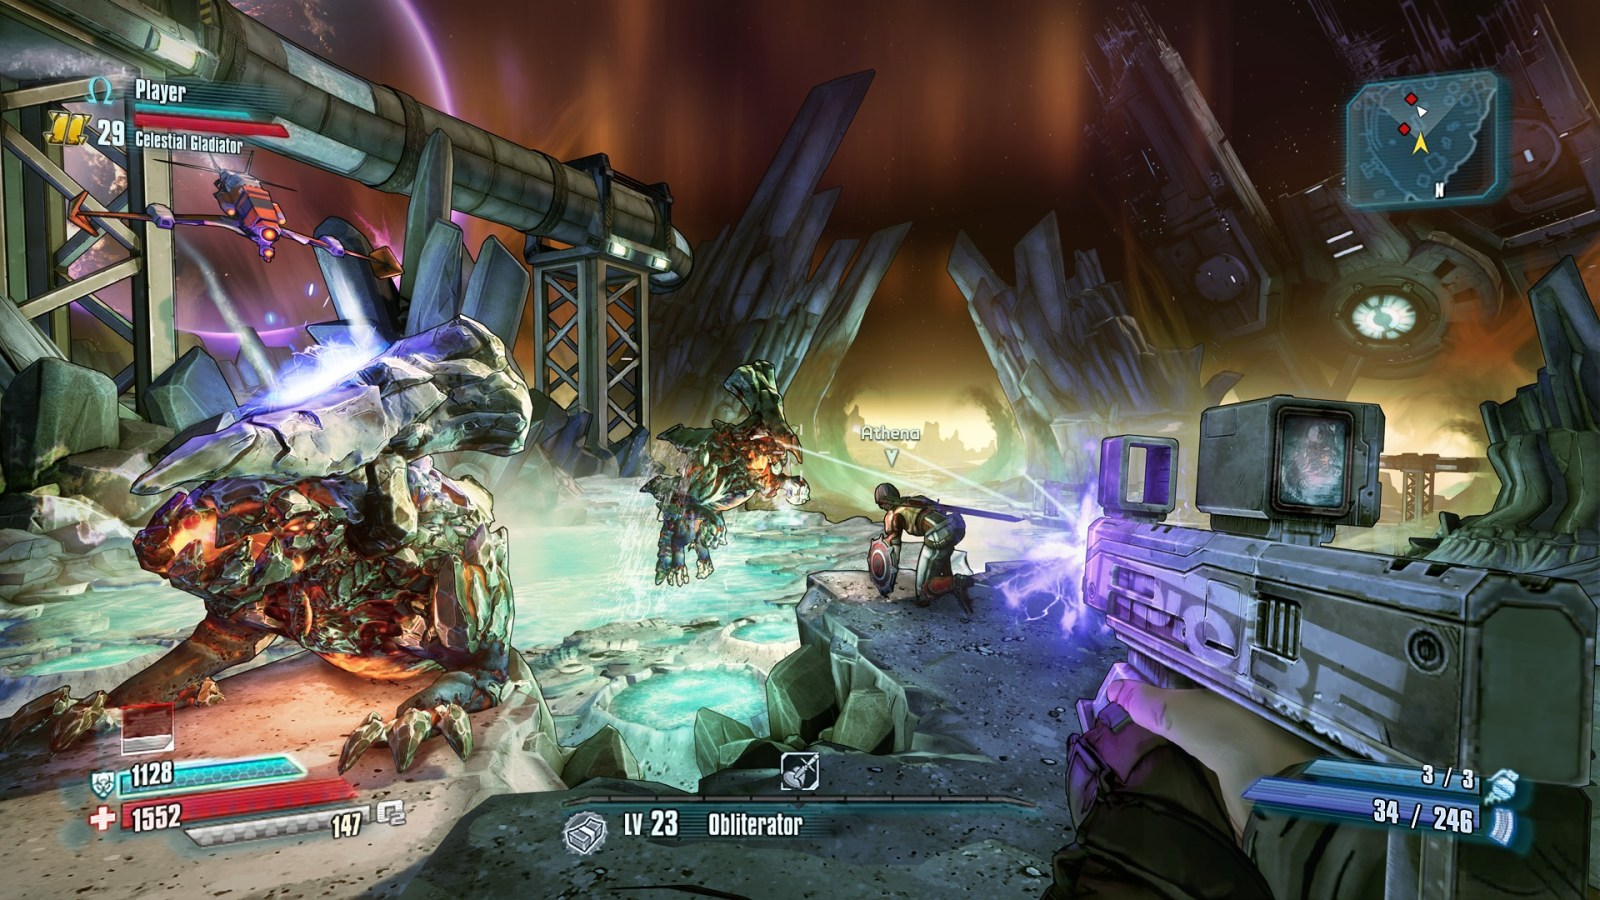 2K Mac/PC game sale up to 85% off from $7 or less: Borderlands Pre-Sequel, Beyond Earth, XCOM, more